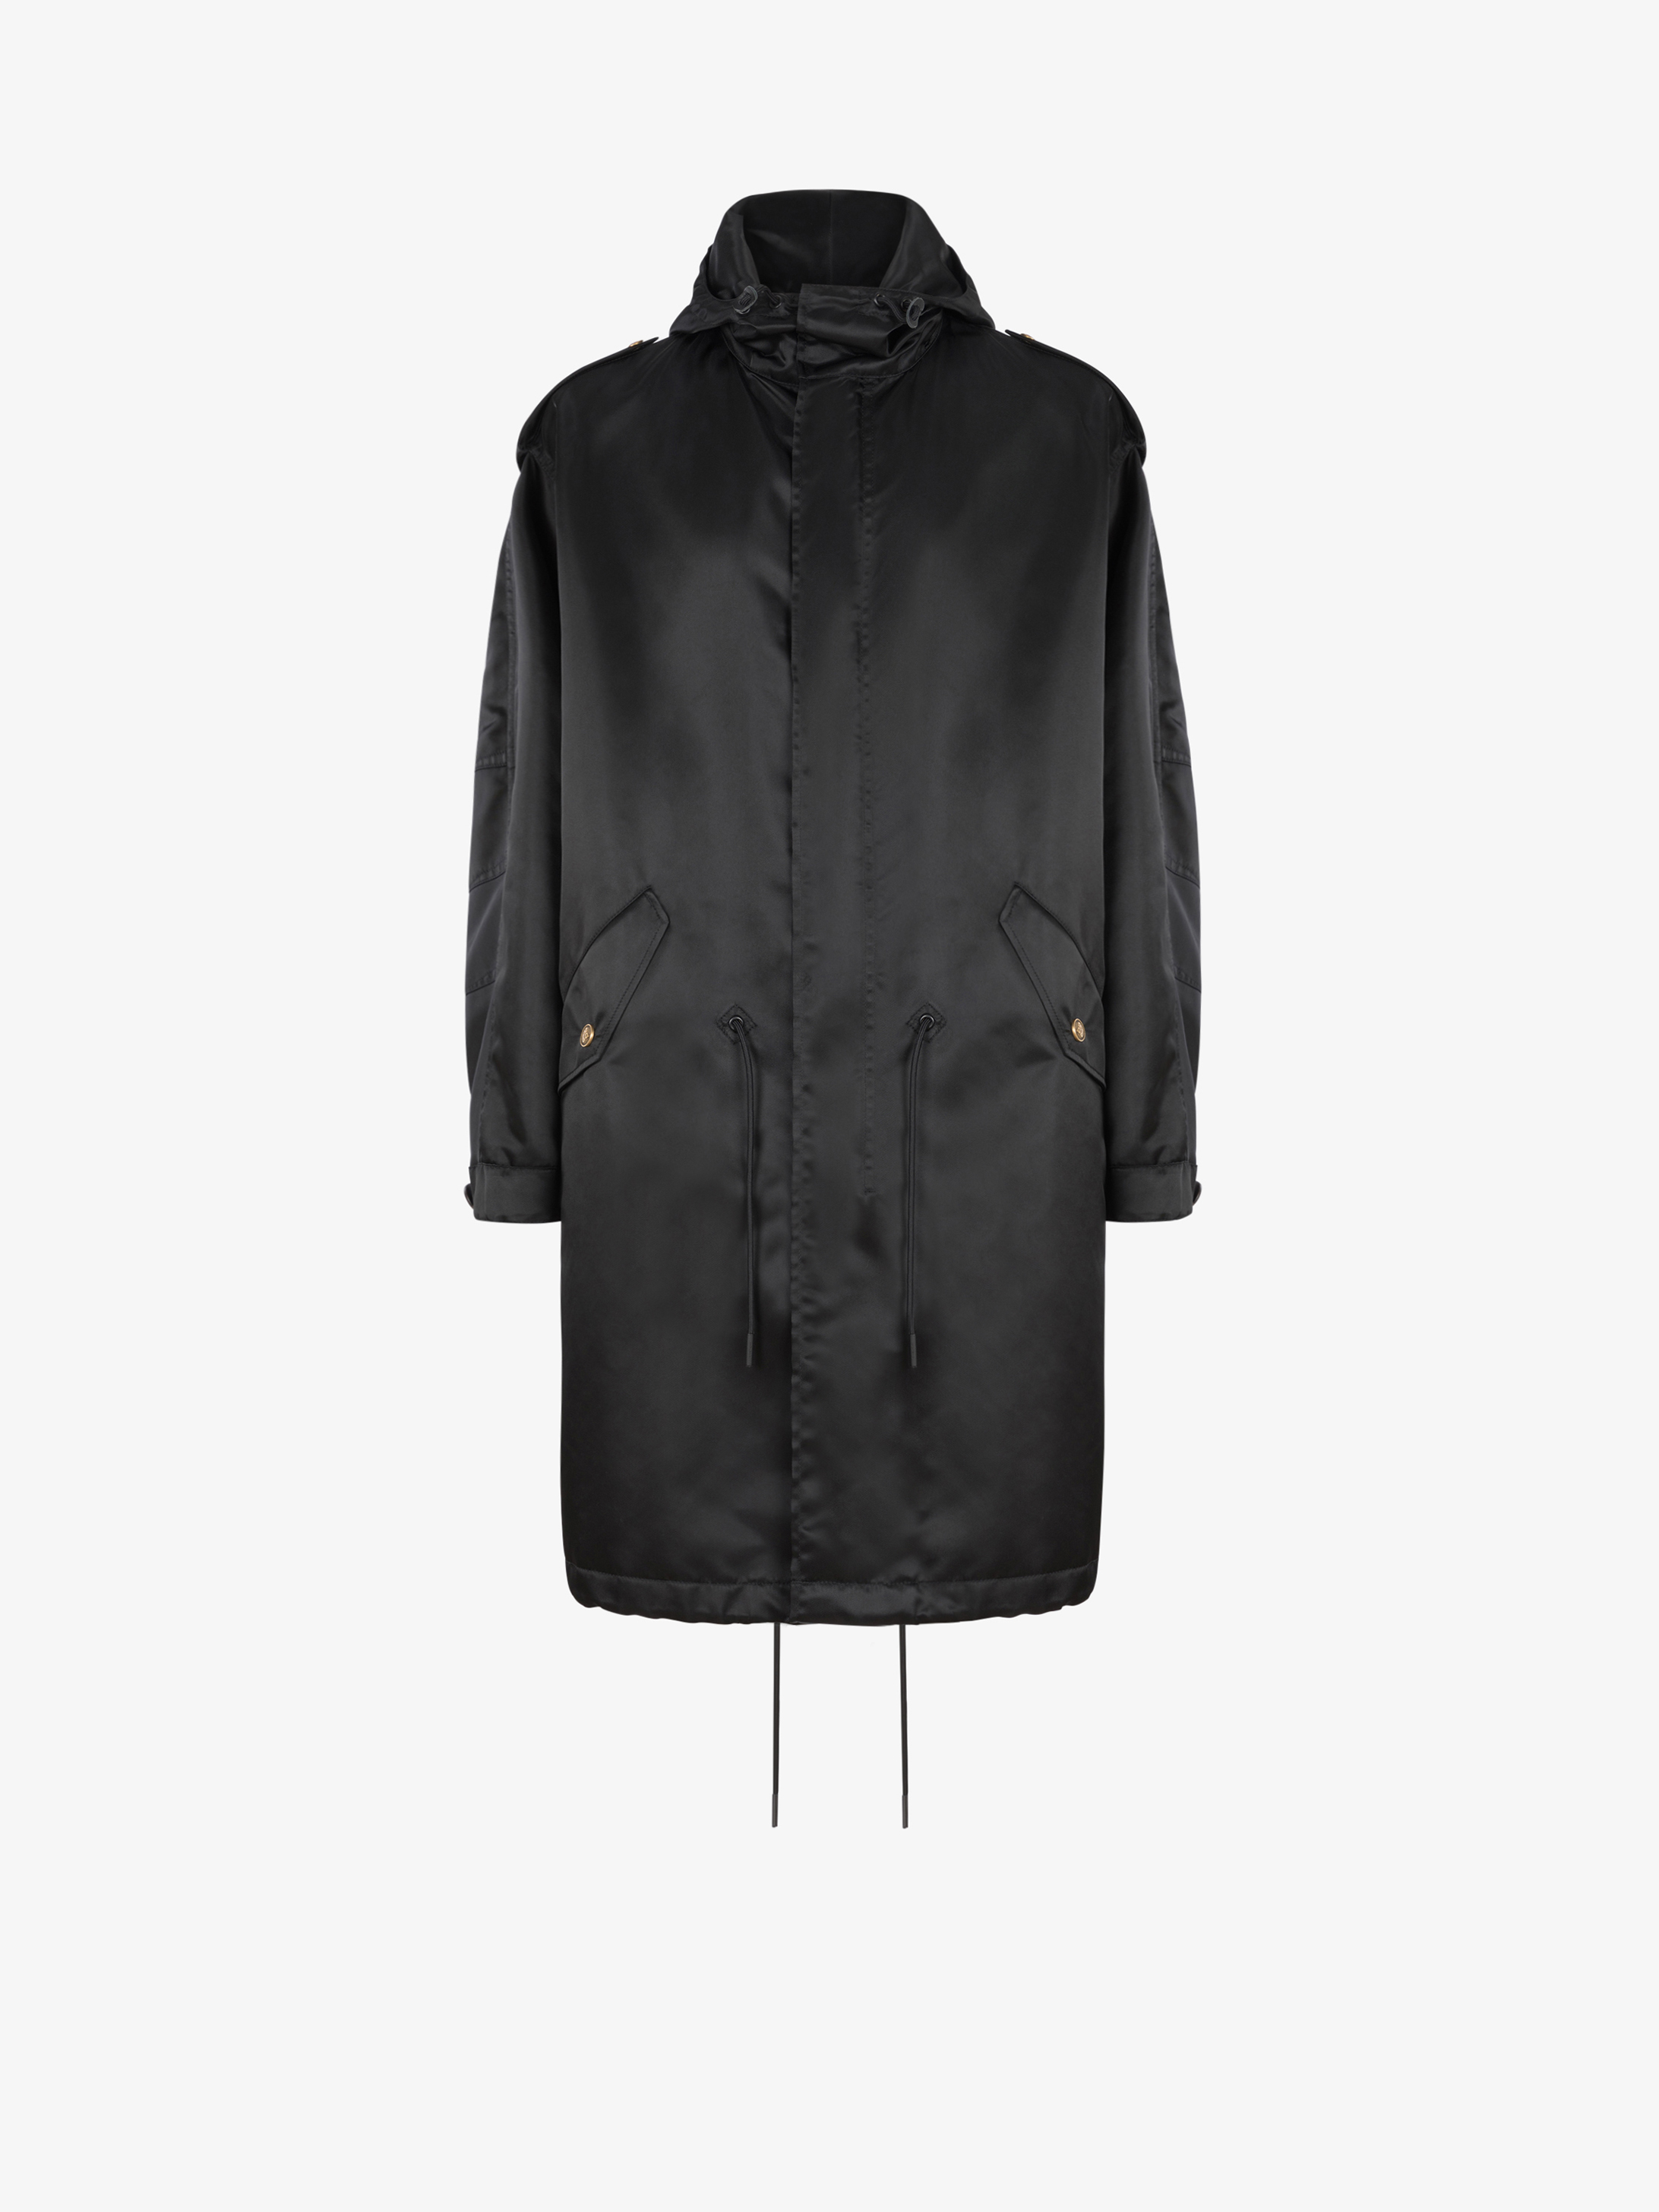 Parka in brillant nylon with 4G buttons